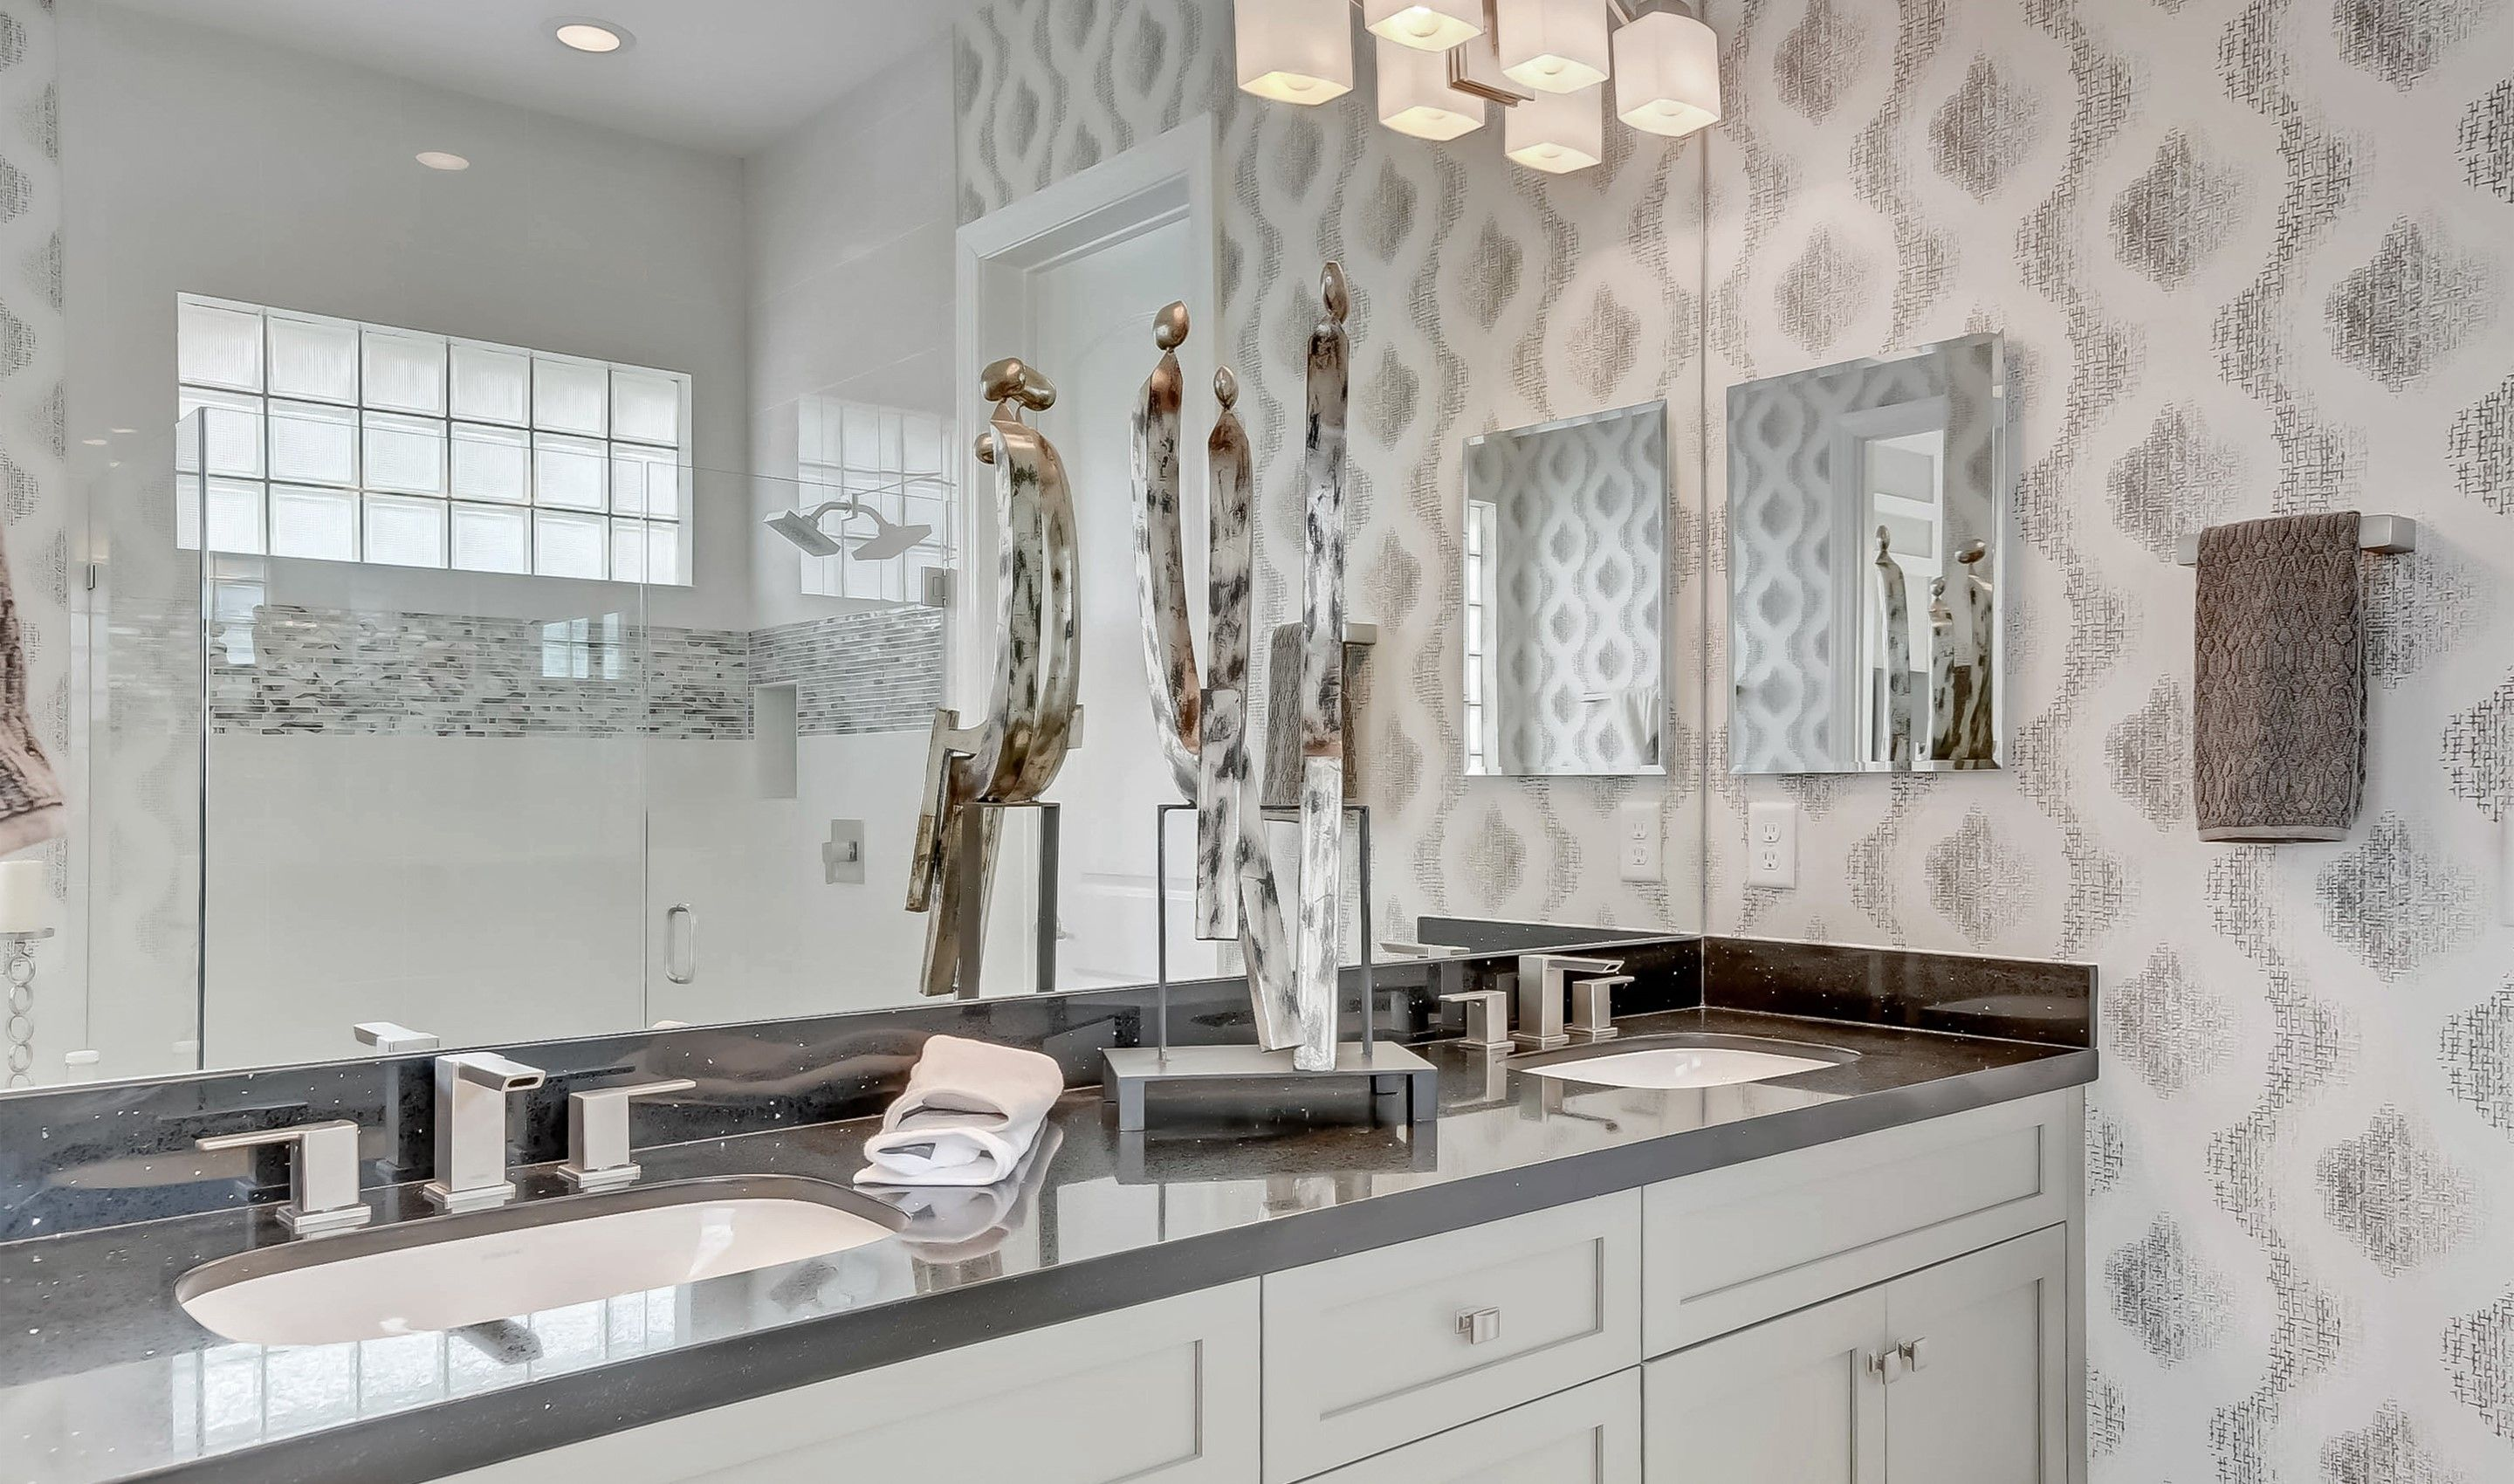 Bathroom featured in the Wheatley By K. Hovnanian® Homes in Broward County-Ft. Lauderdale, FL